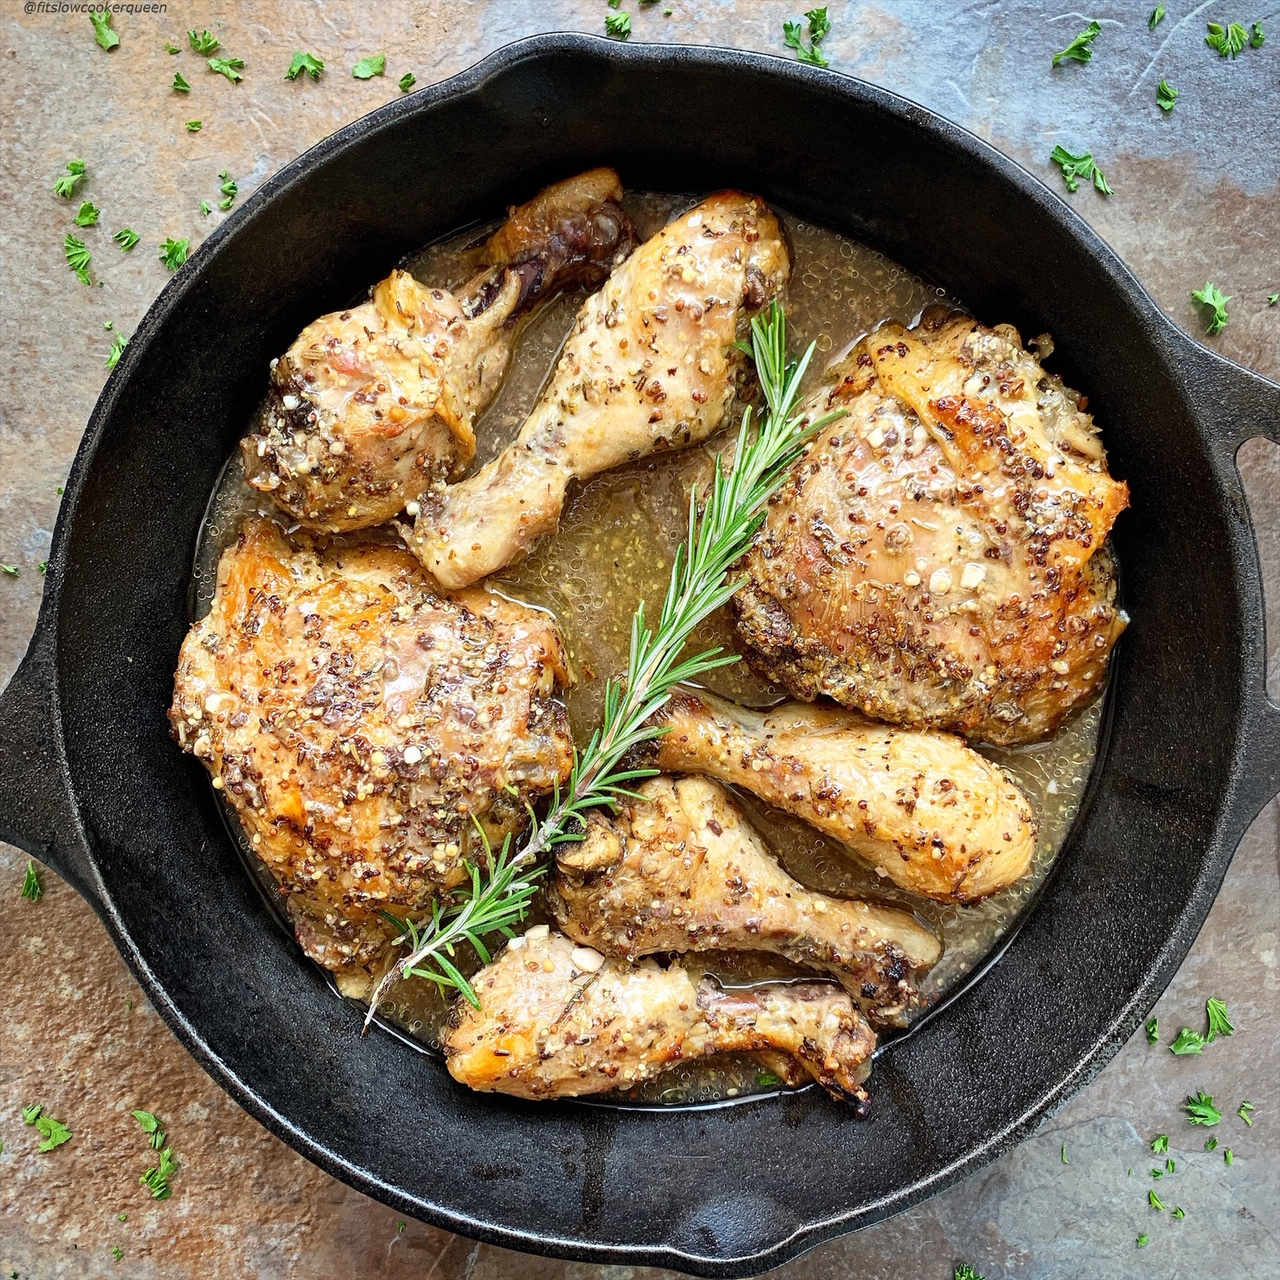 A homemade rosemary Dijon sauce cooks on top of your favorite cut of chicken in this easy low-carb, paleo, and whole30 slow cooker or electric pressure cooker recipe.